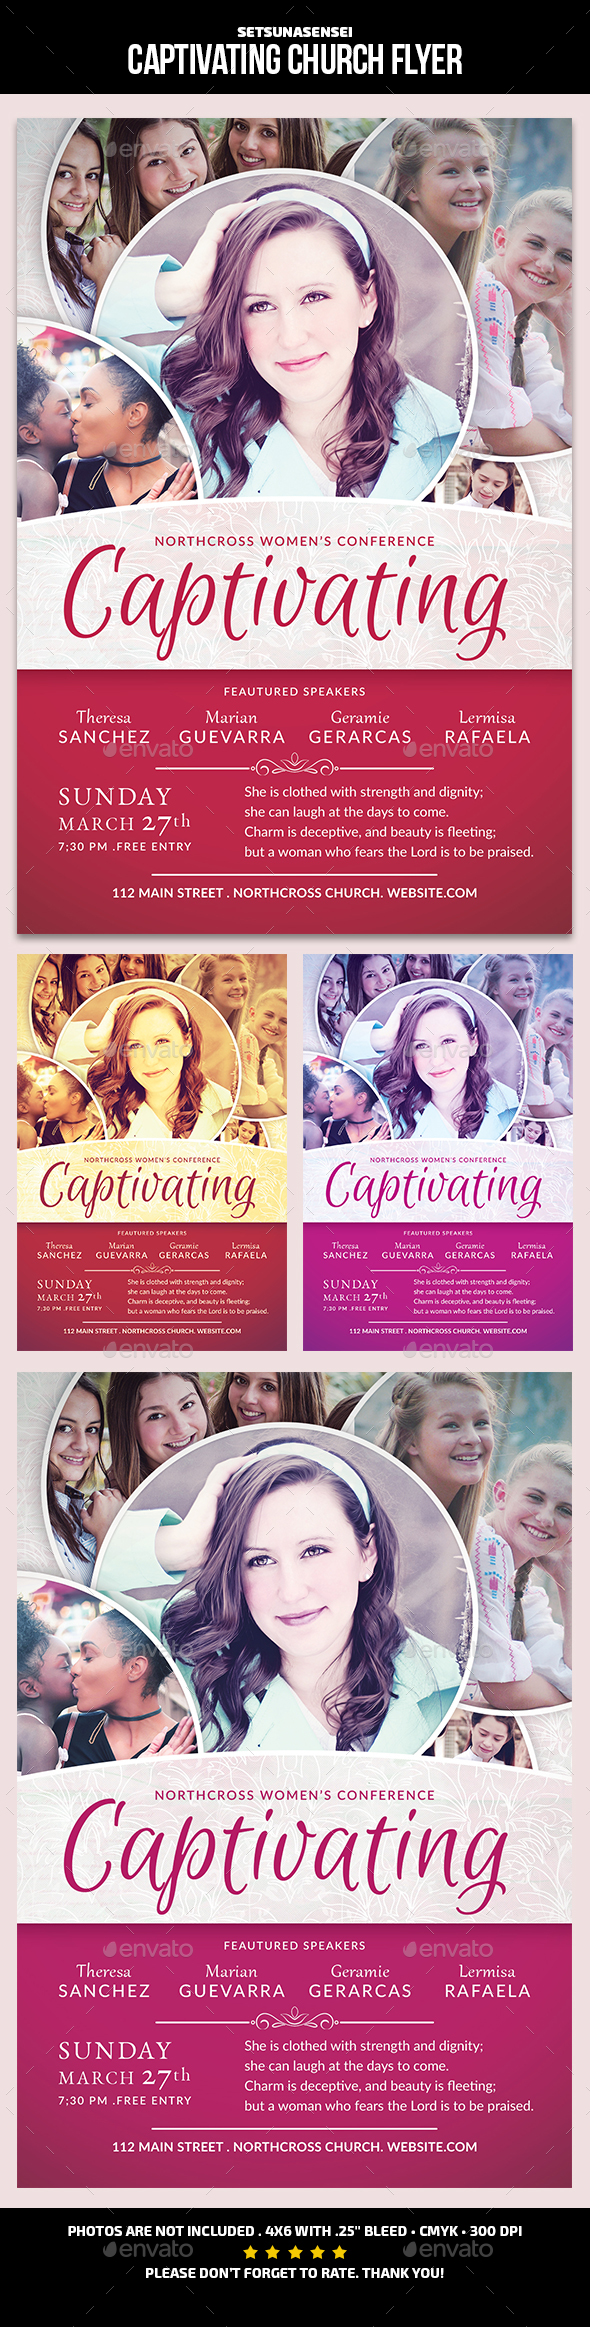 Captivating Church Flyer - Church Flyers